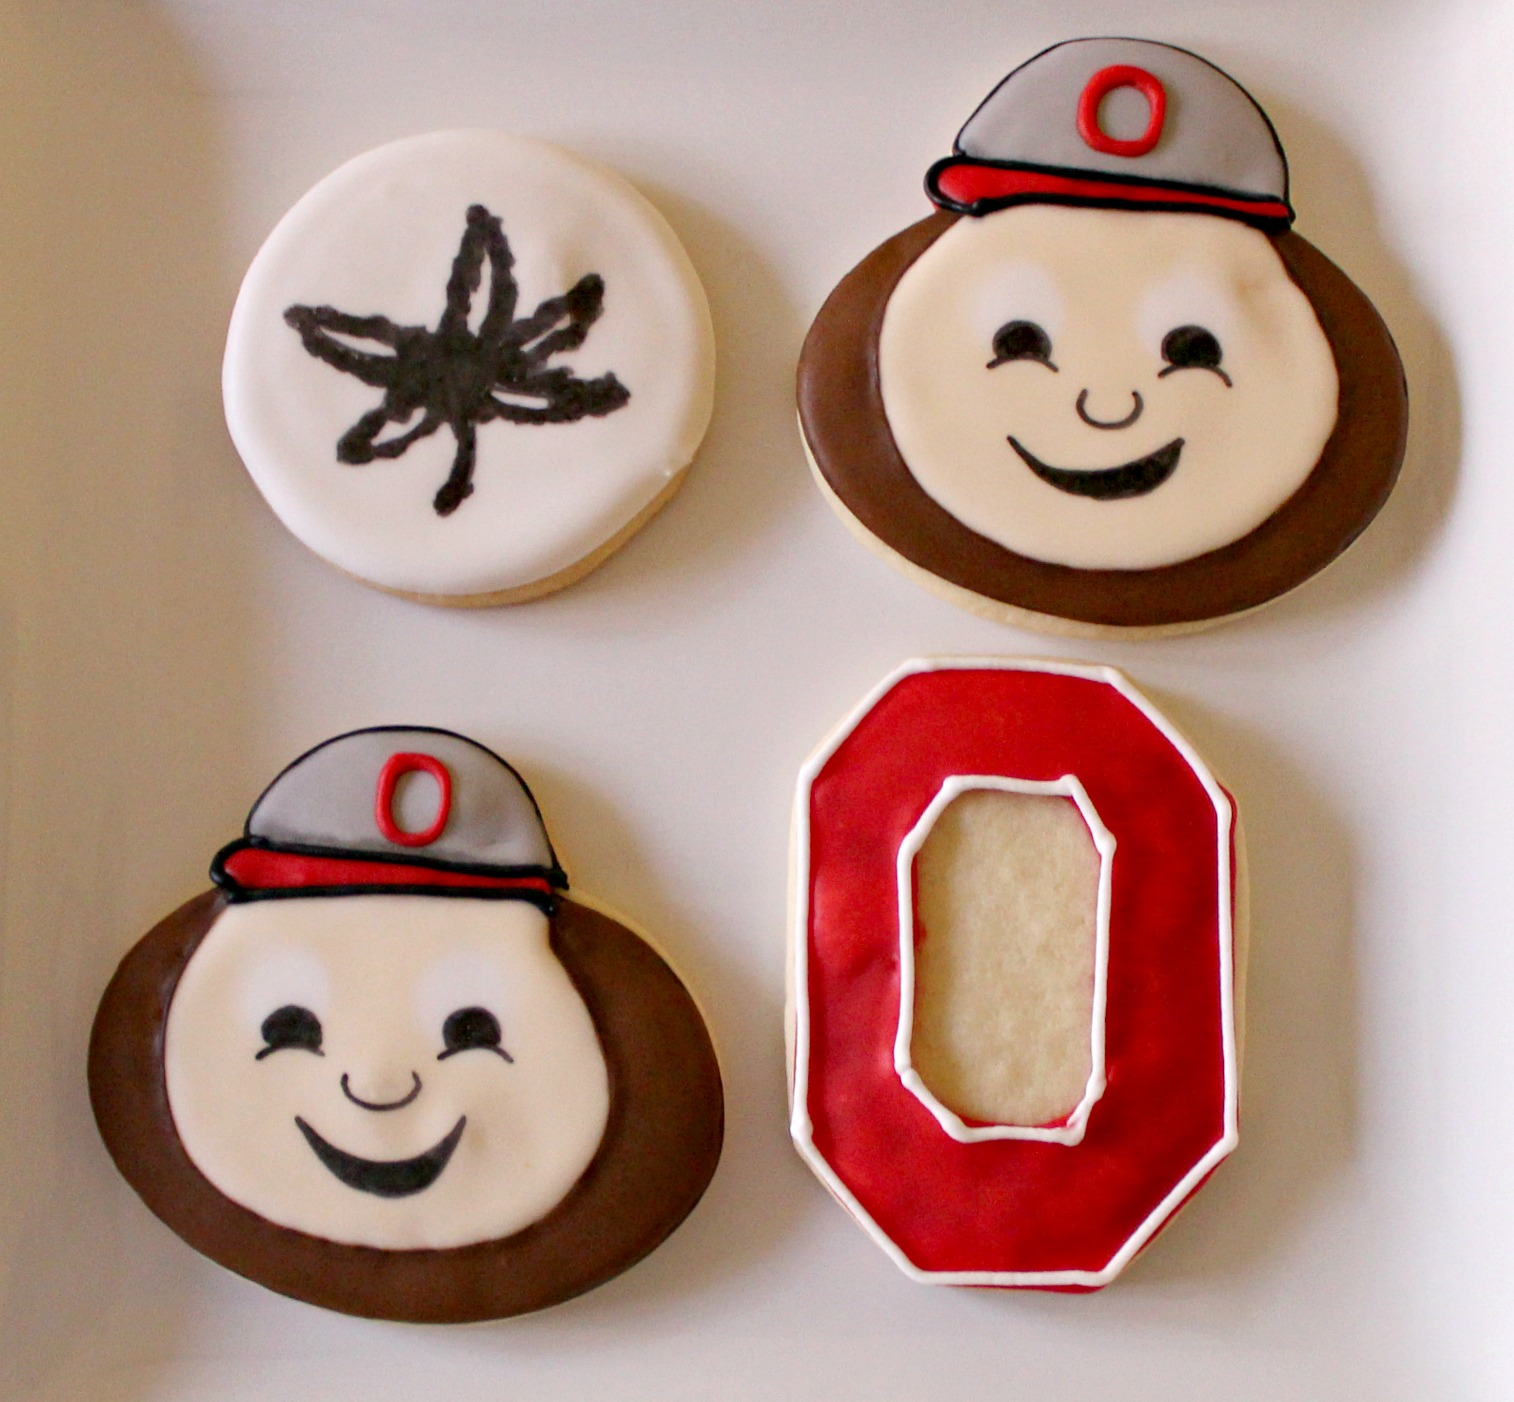 Ohio State cookies